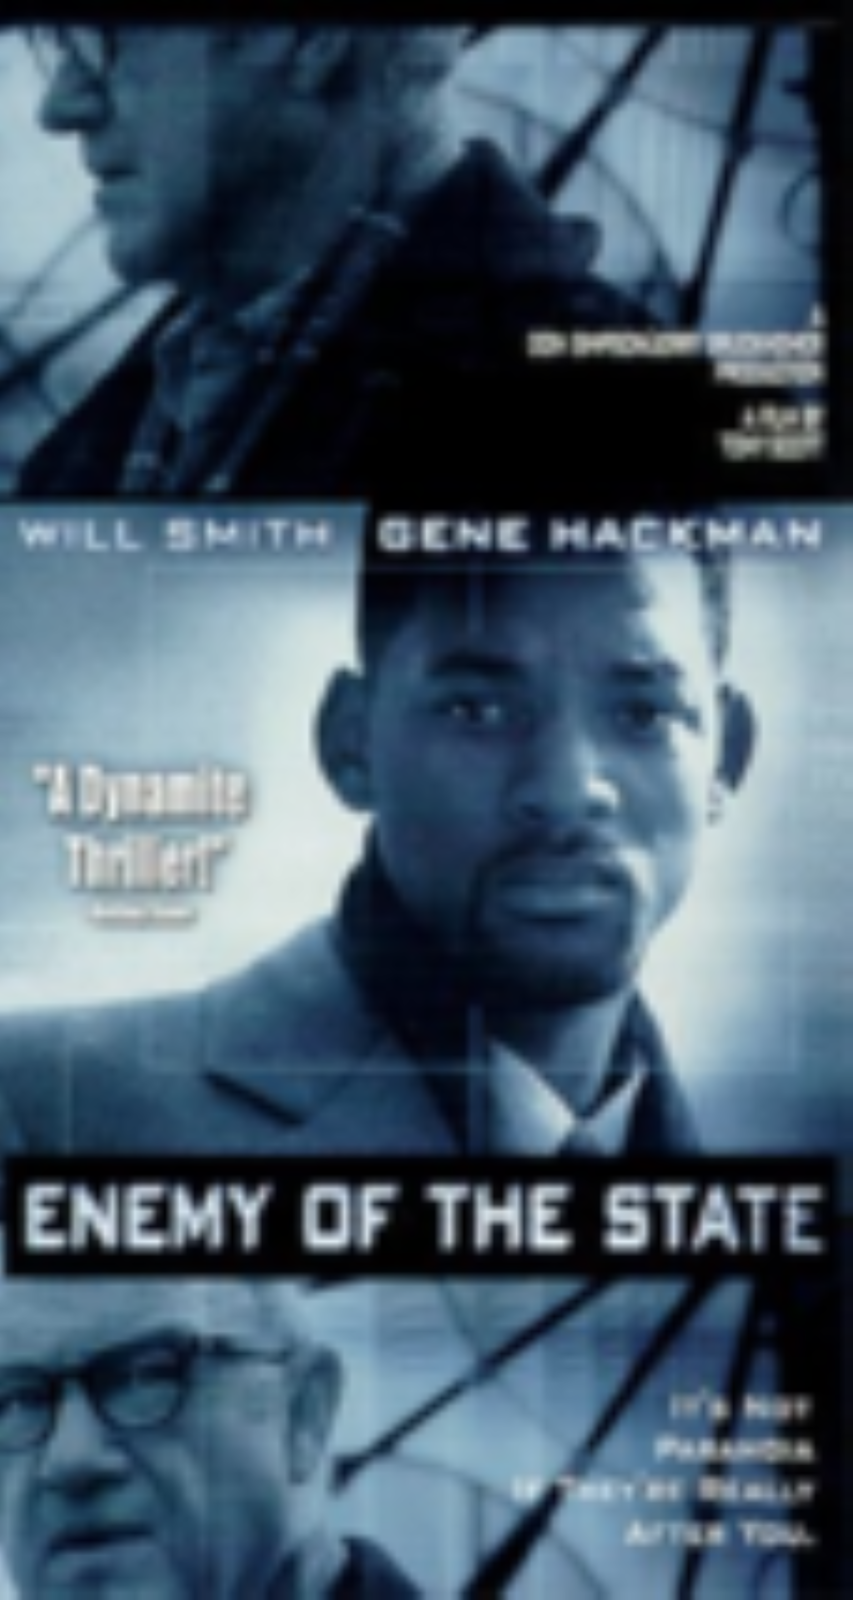 Enemy of the State Vhs